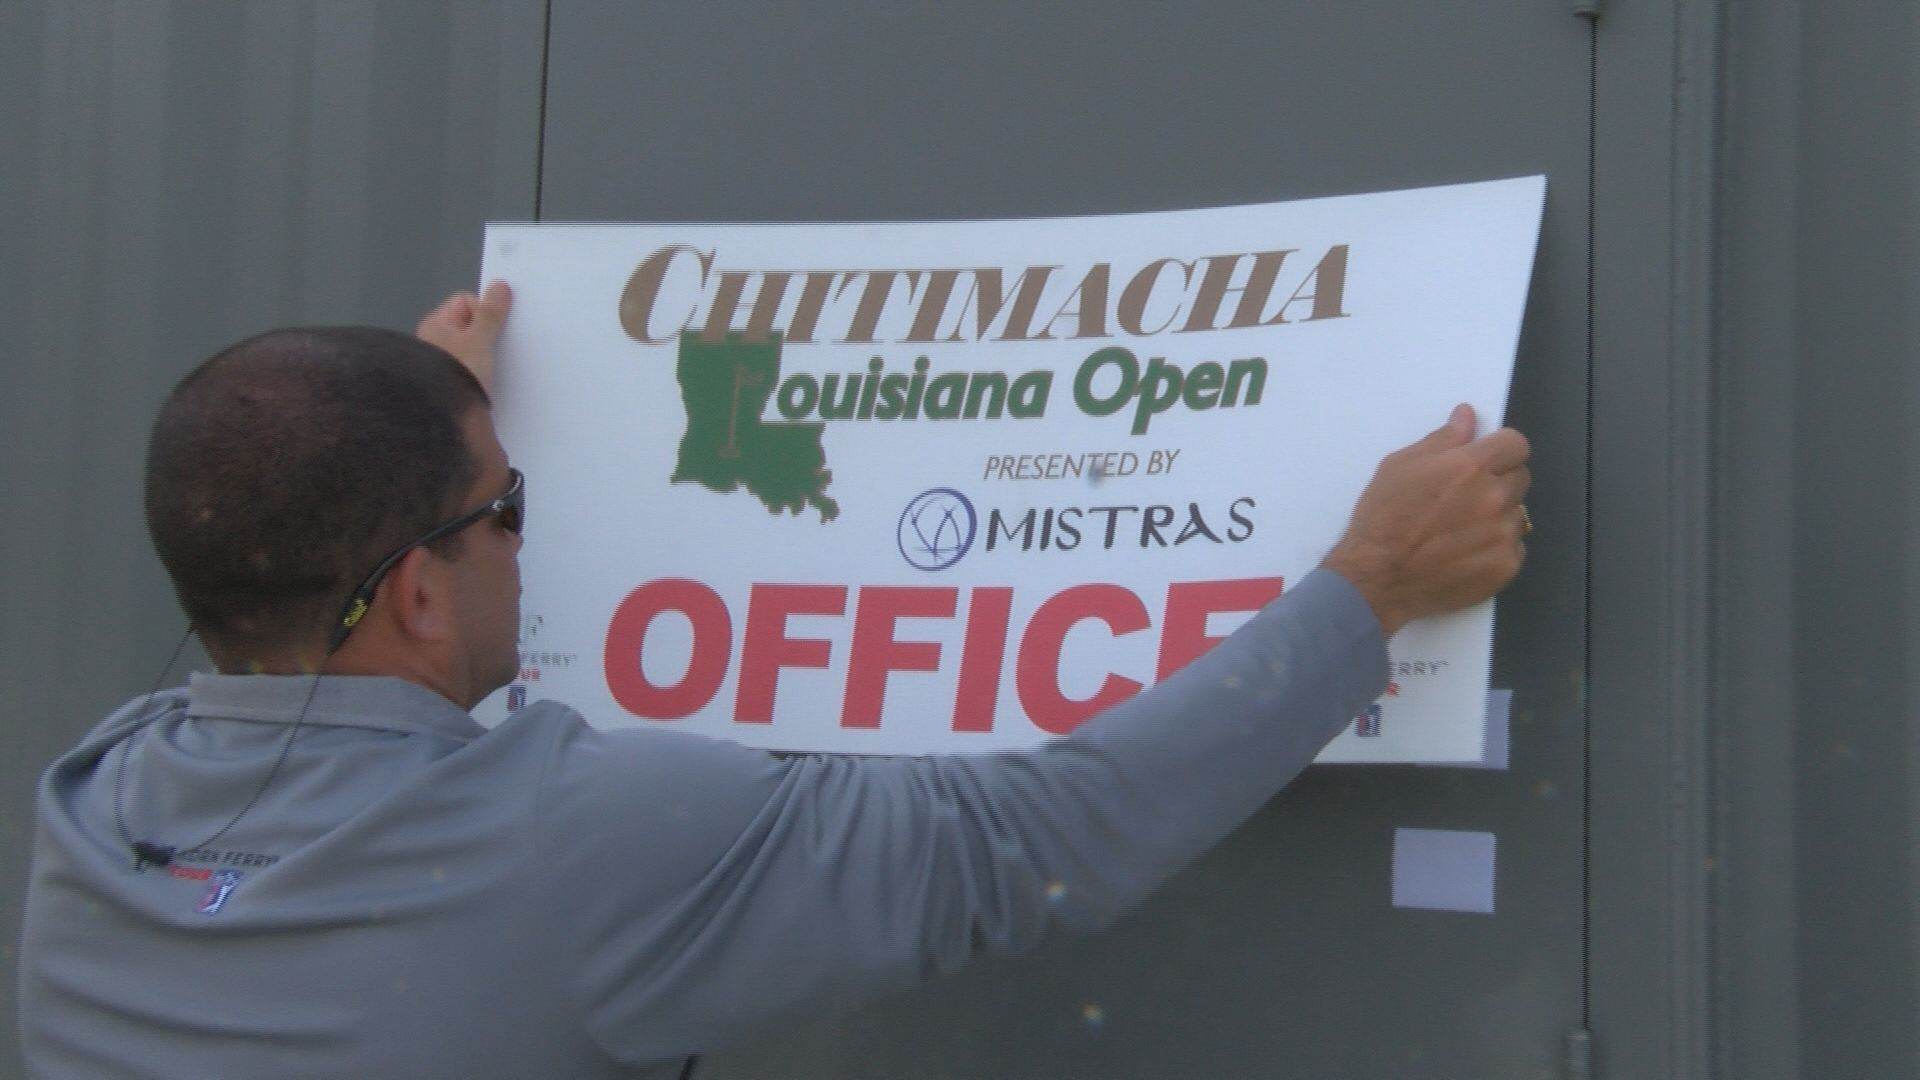 What Next for Louisiana Open ? - News15